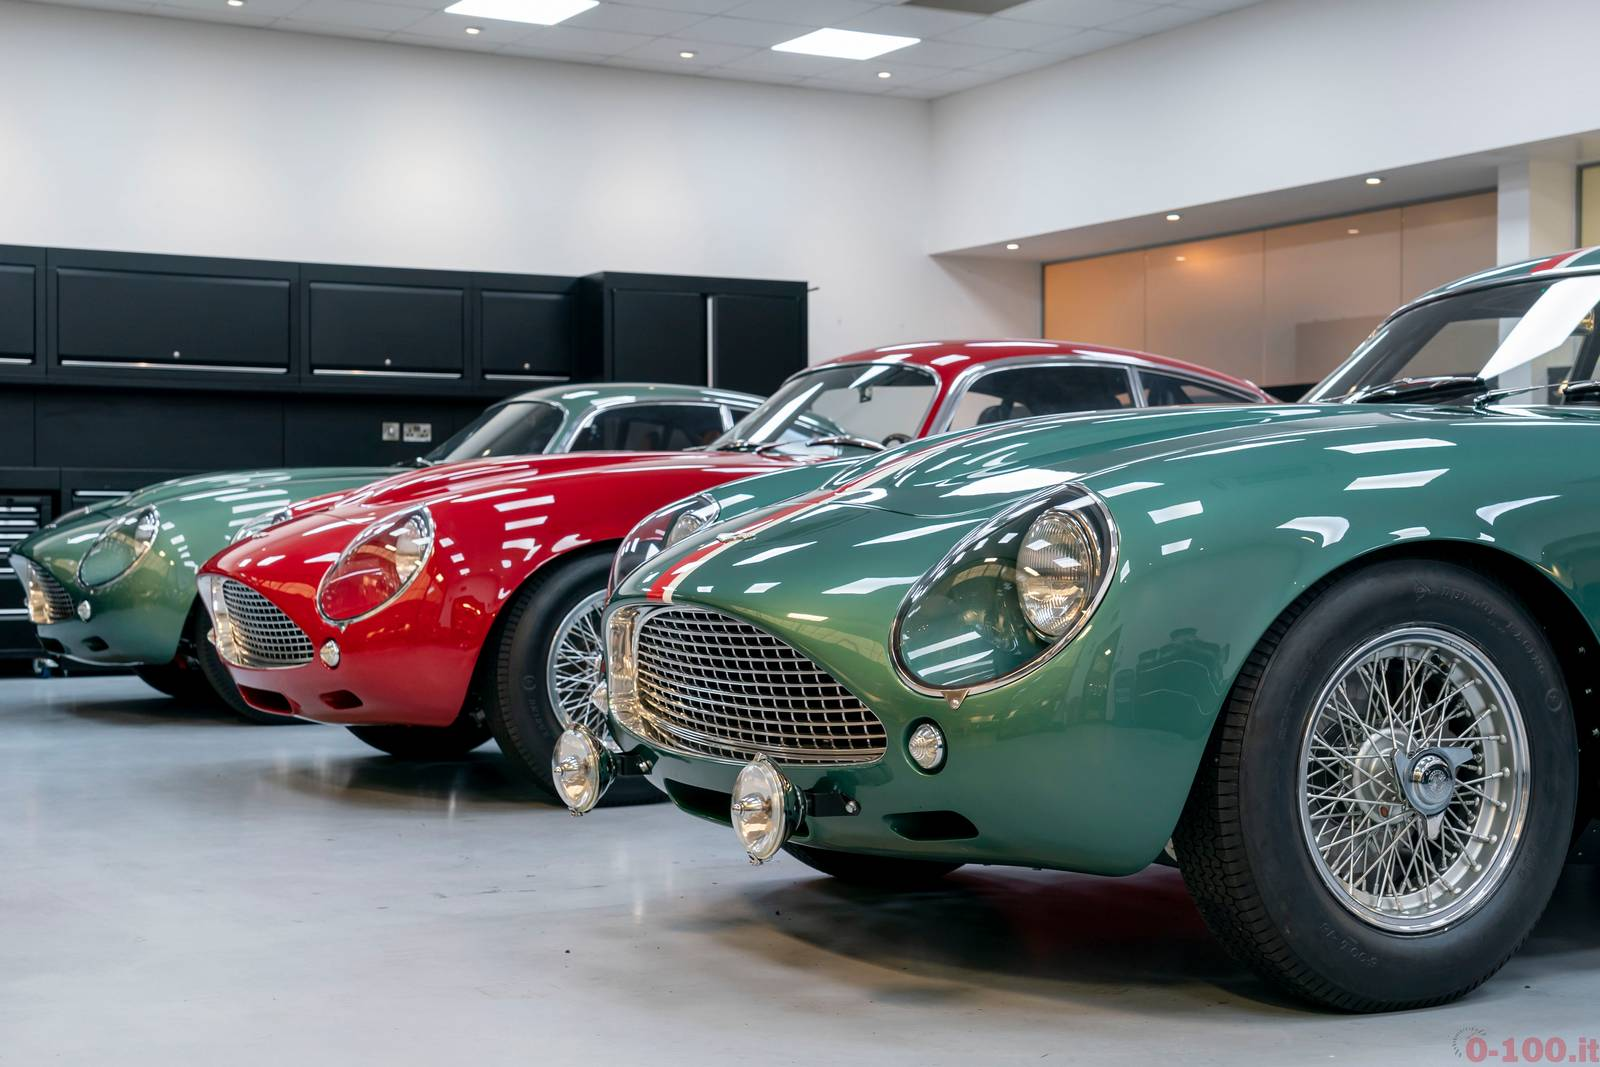 martin_db4_gtz_sanction_3_zagato_centenary_collection_0-100_4